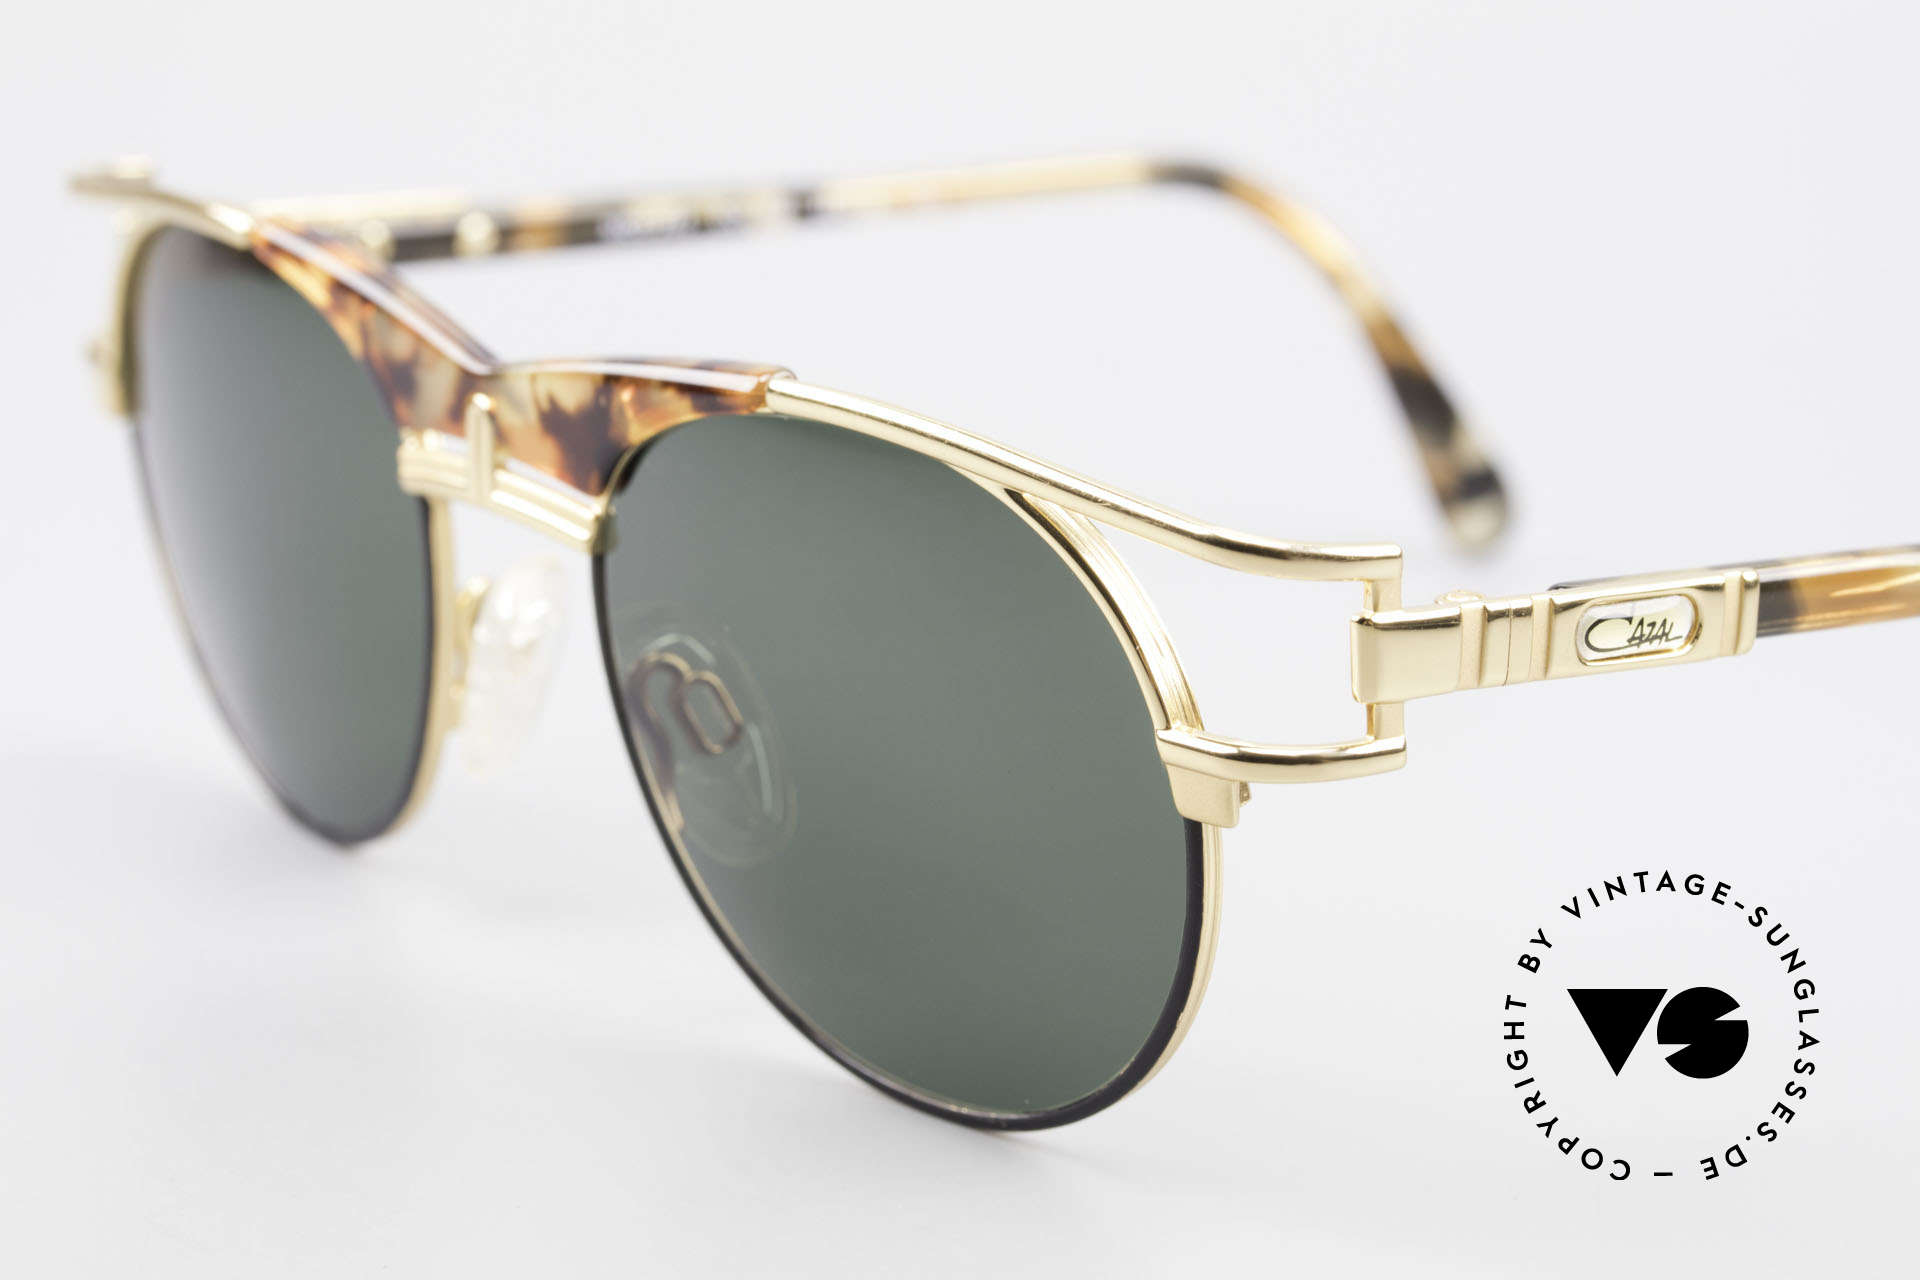 Cazal 244 Iconic 90's Vintage Sunglasses, never worn (like all our vintage CAZAL rarities), Made for Men and Women